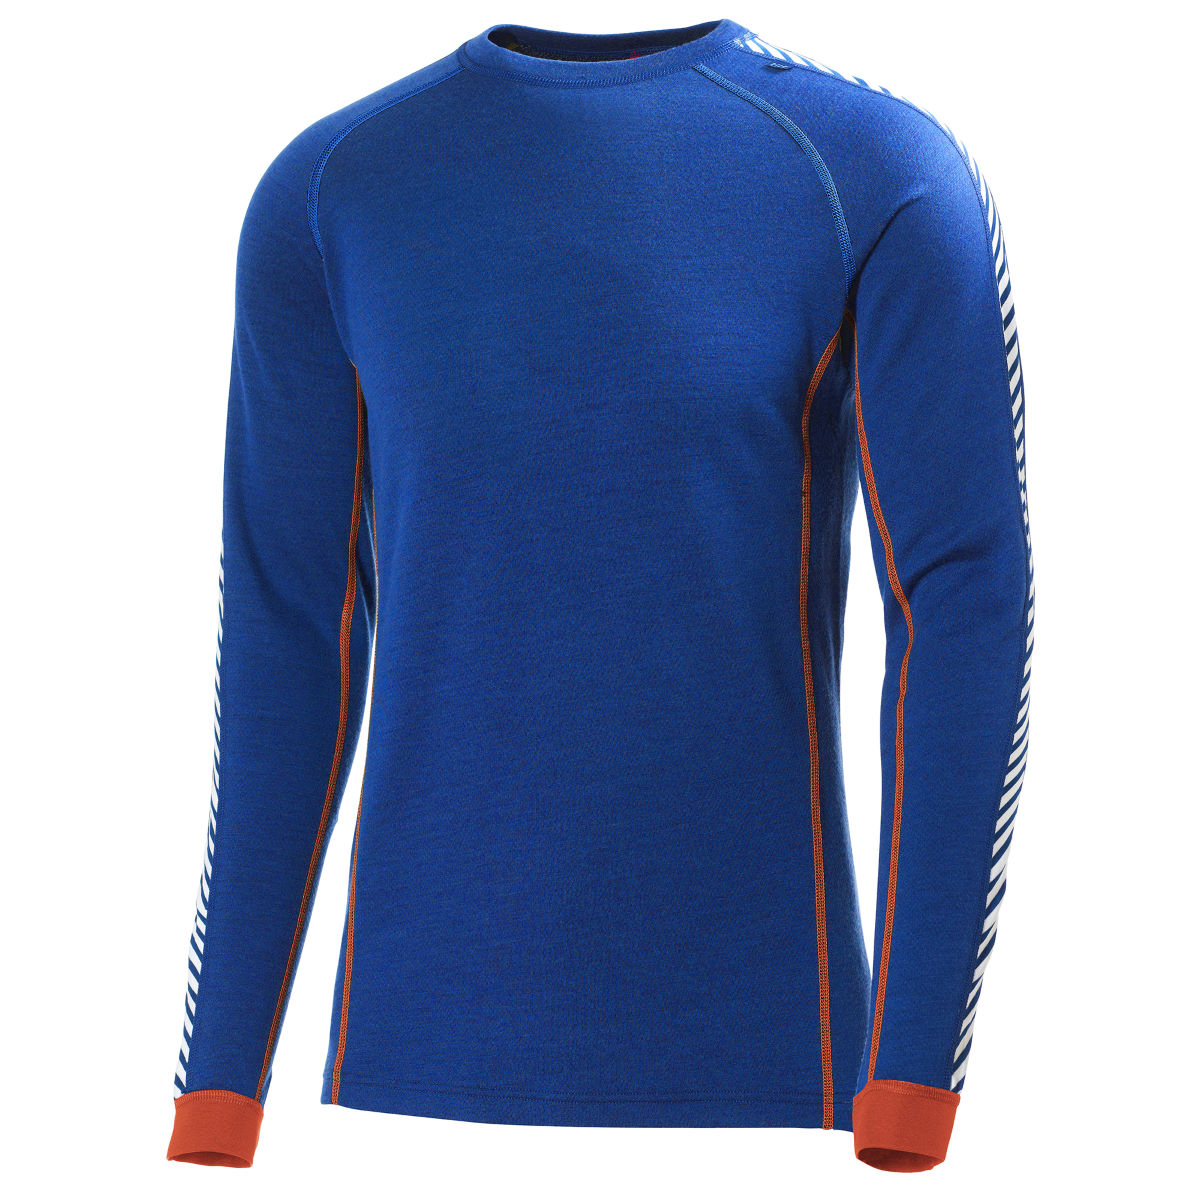 Helly Hansen Warm Ice Crew Neck Base Layer - Extra Large Blue